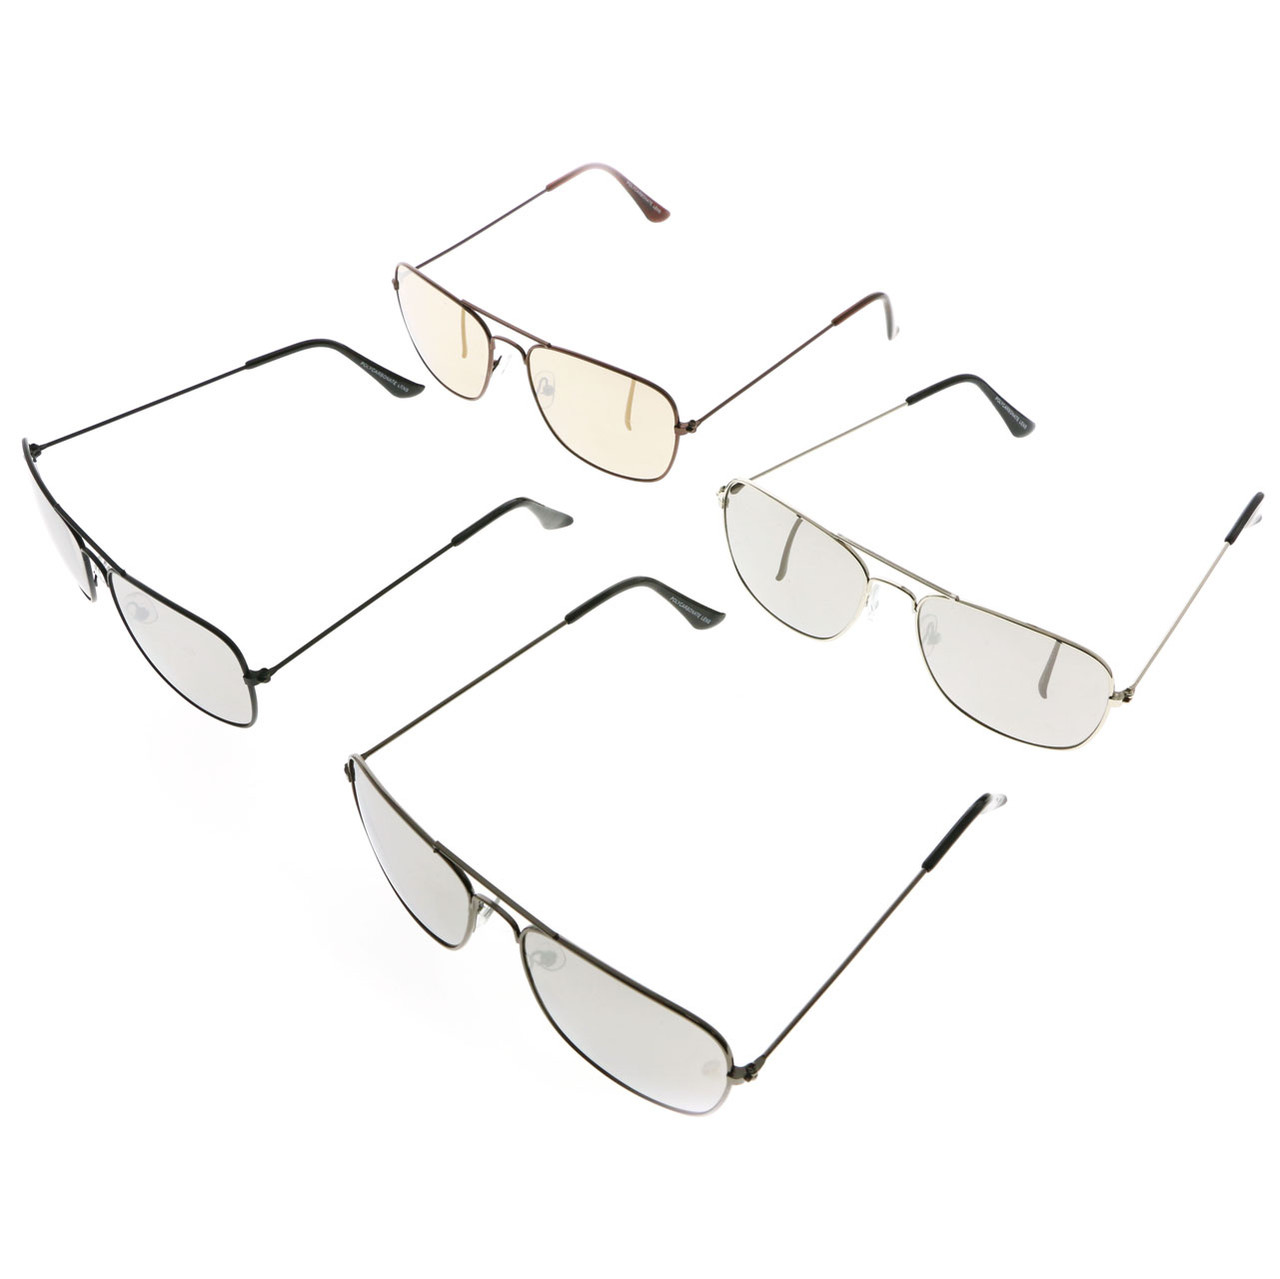 Aviator Mirrored Lens Sunglasses Assorted 26SG4333M